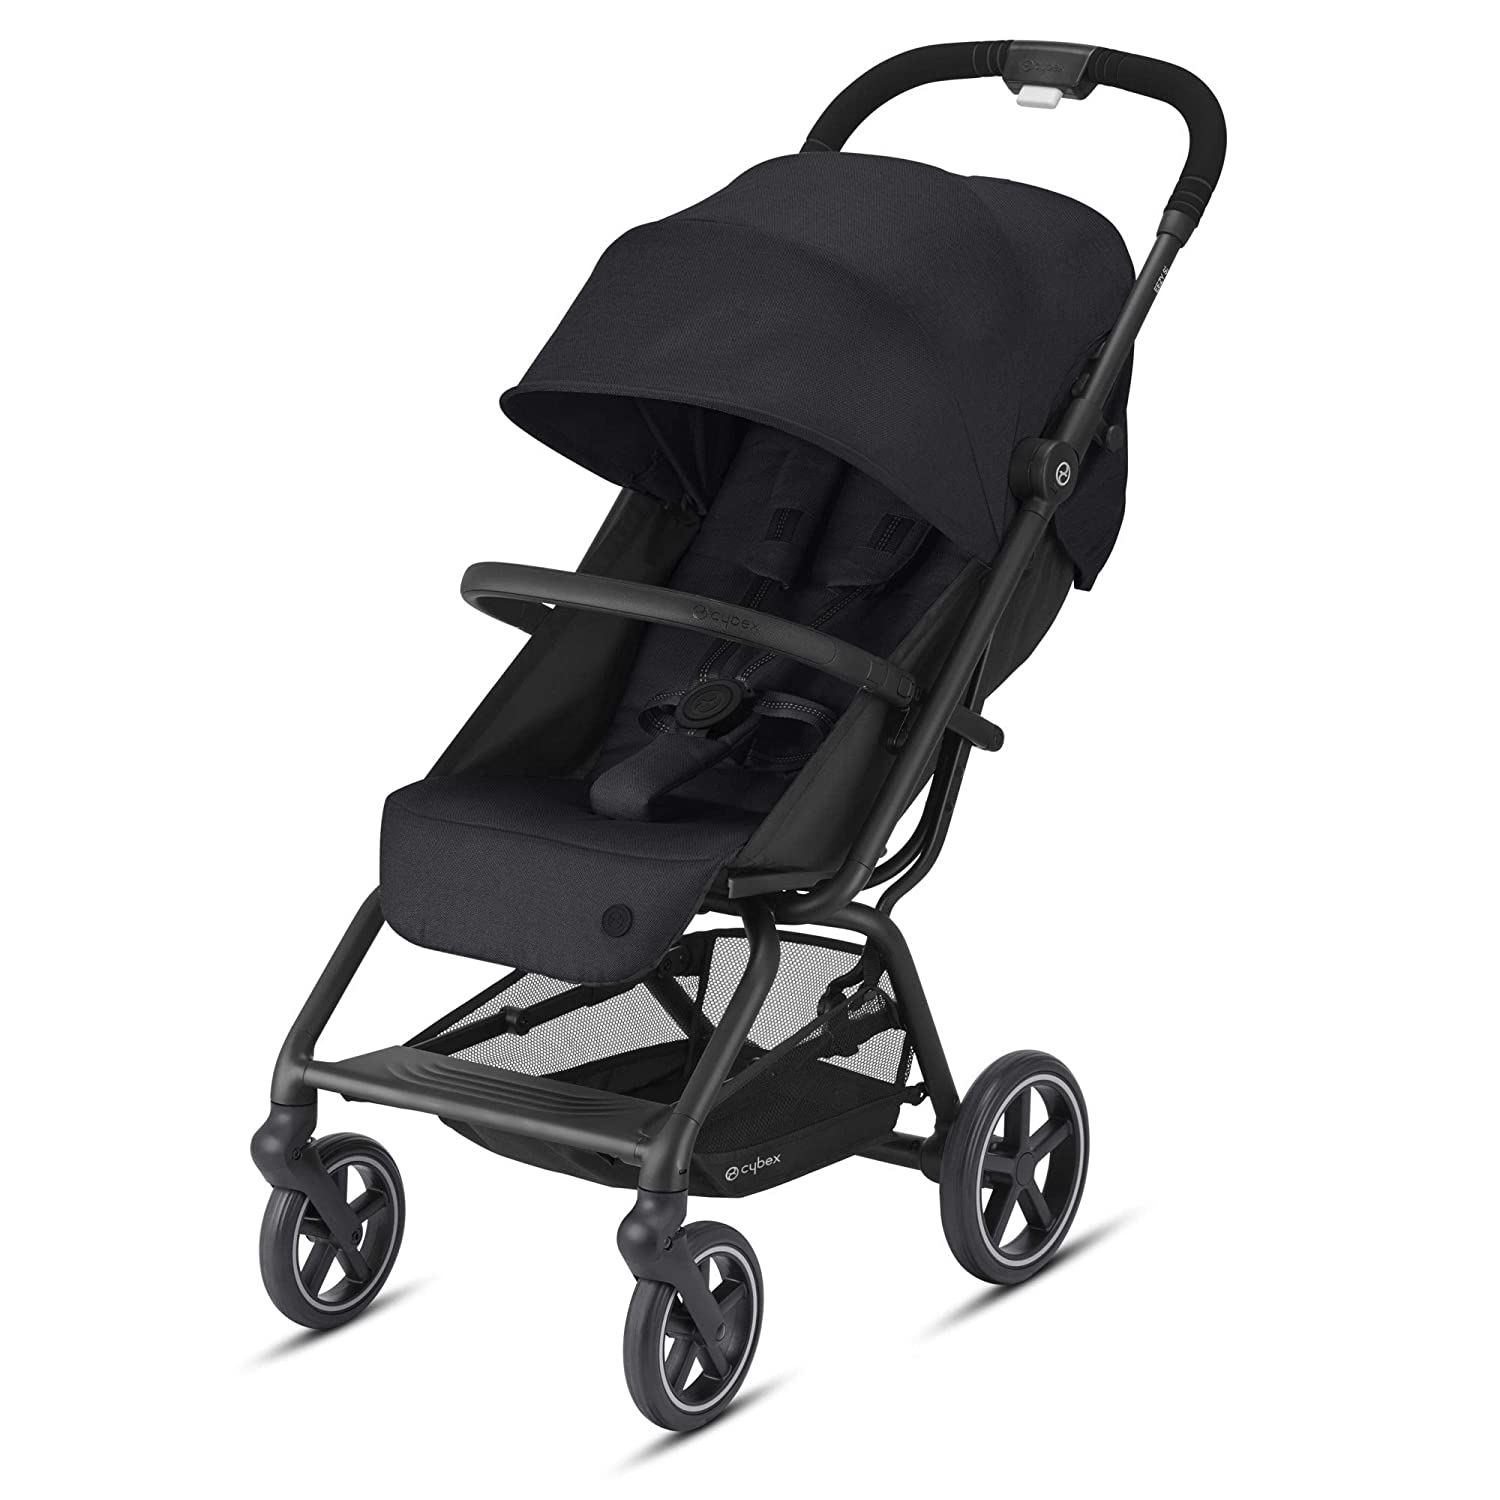 Cybex Eezy S + 2 Lightweight Travel Baby Stroller for 6 Months+, Compatible with Infant Car Seats, Compact Fold, Stands for Storage, All-Terrain Wheels, Deep Black